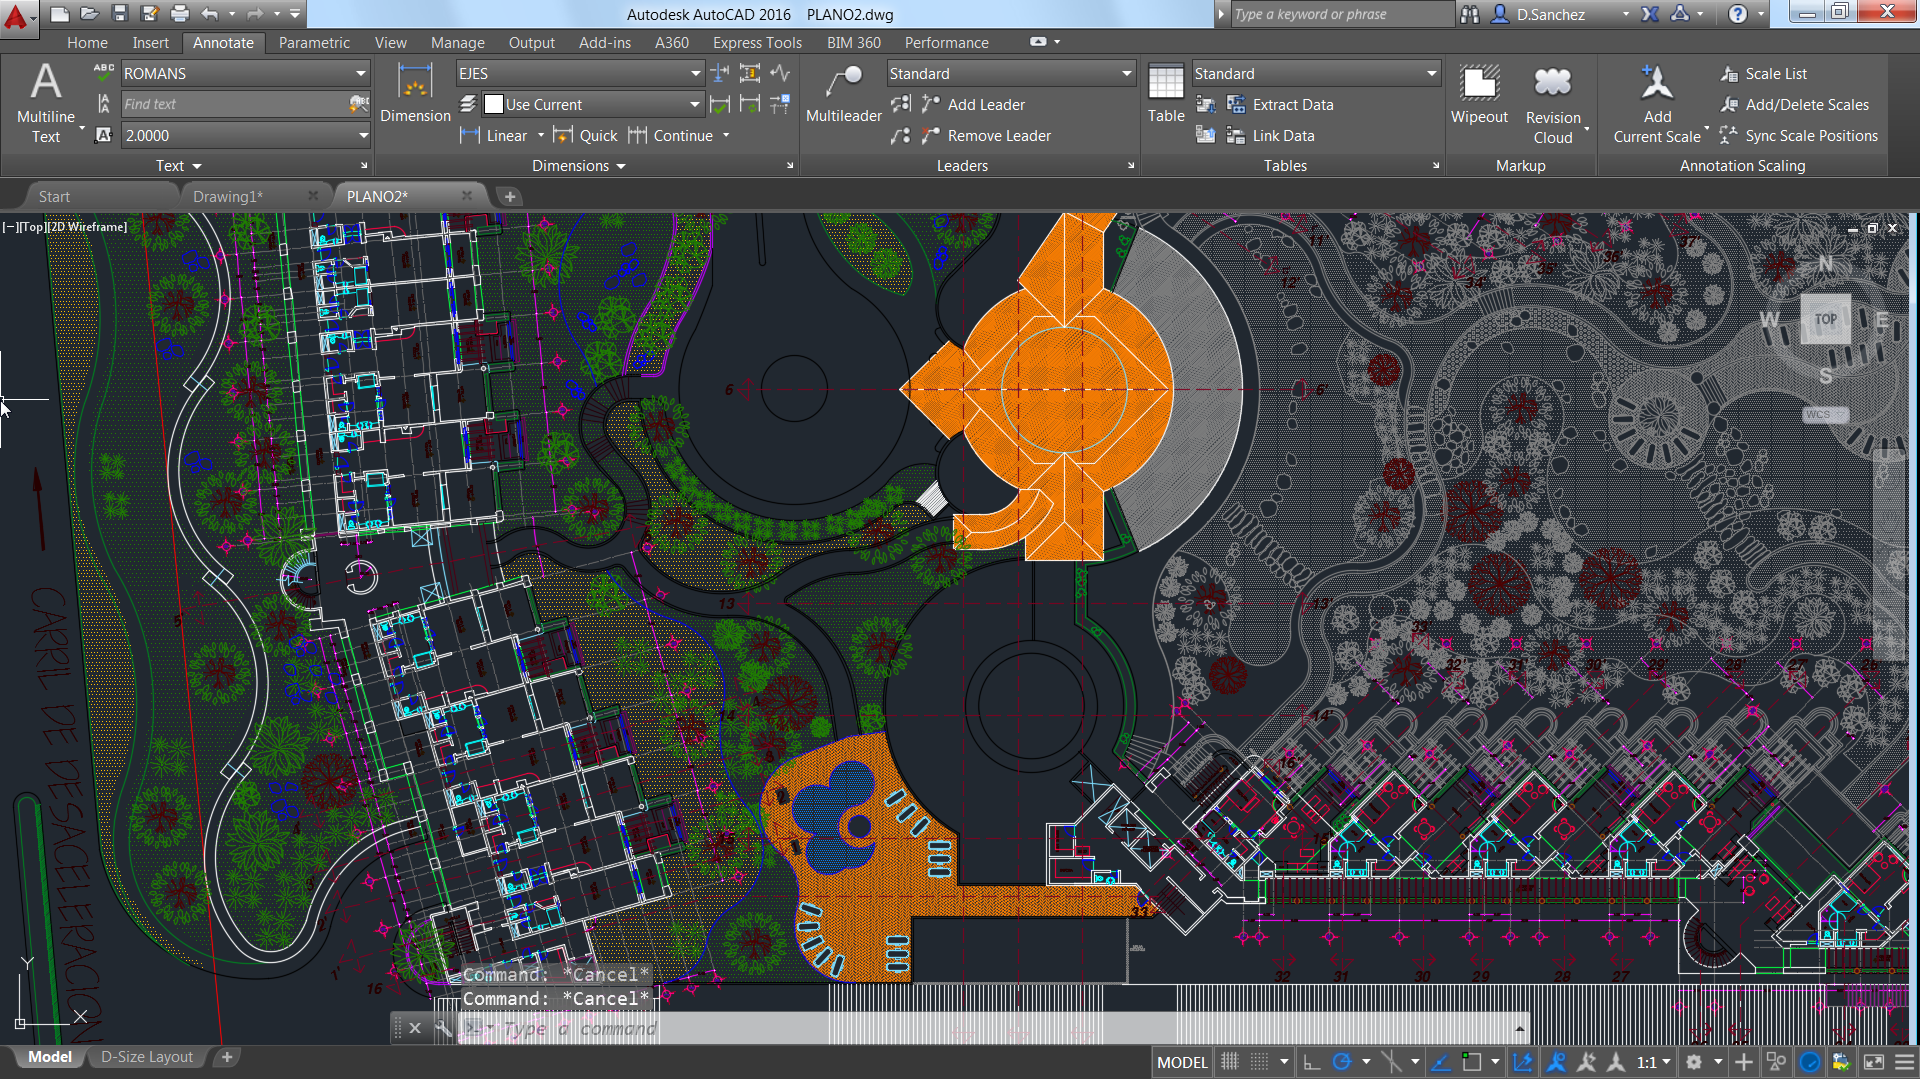 What's new in AutoCAD 2016: New features roundup | CADnotes